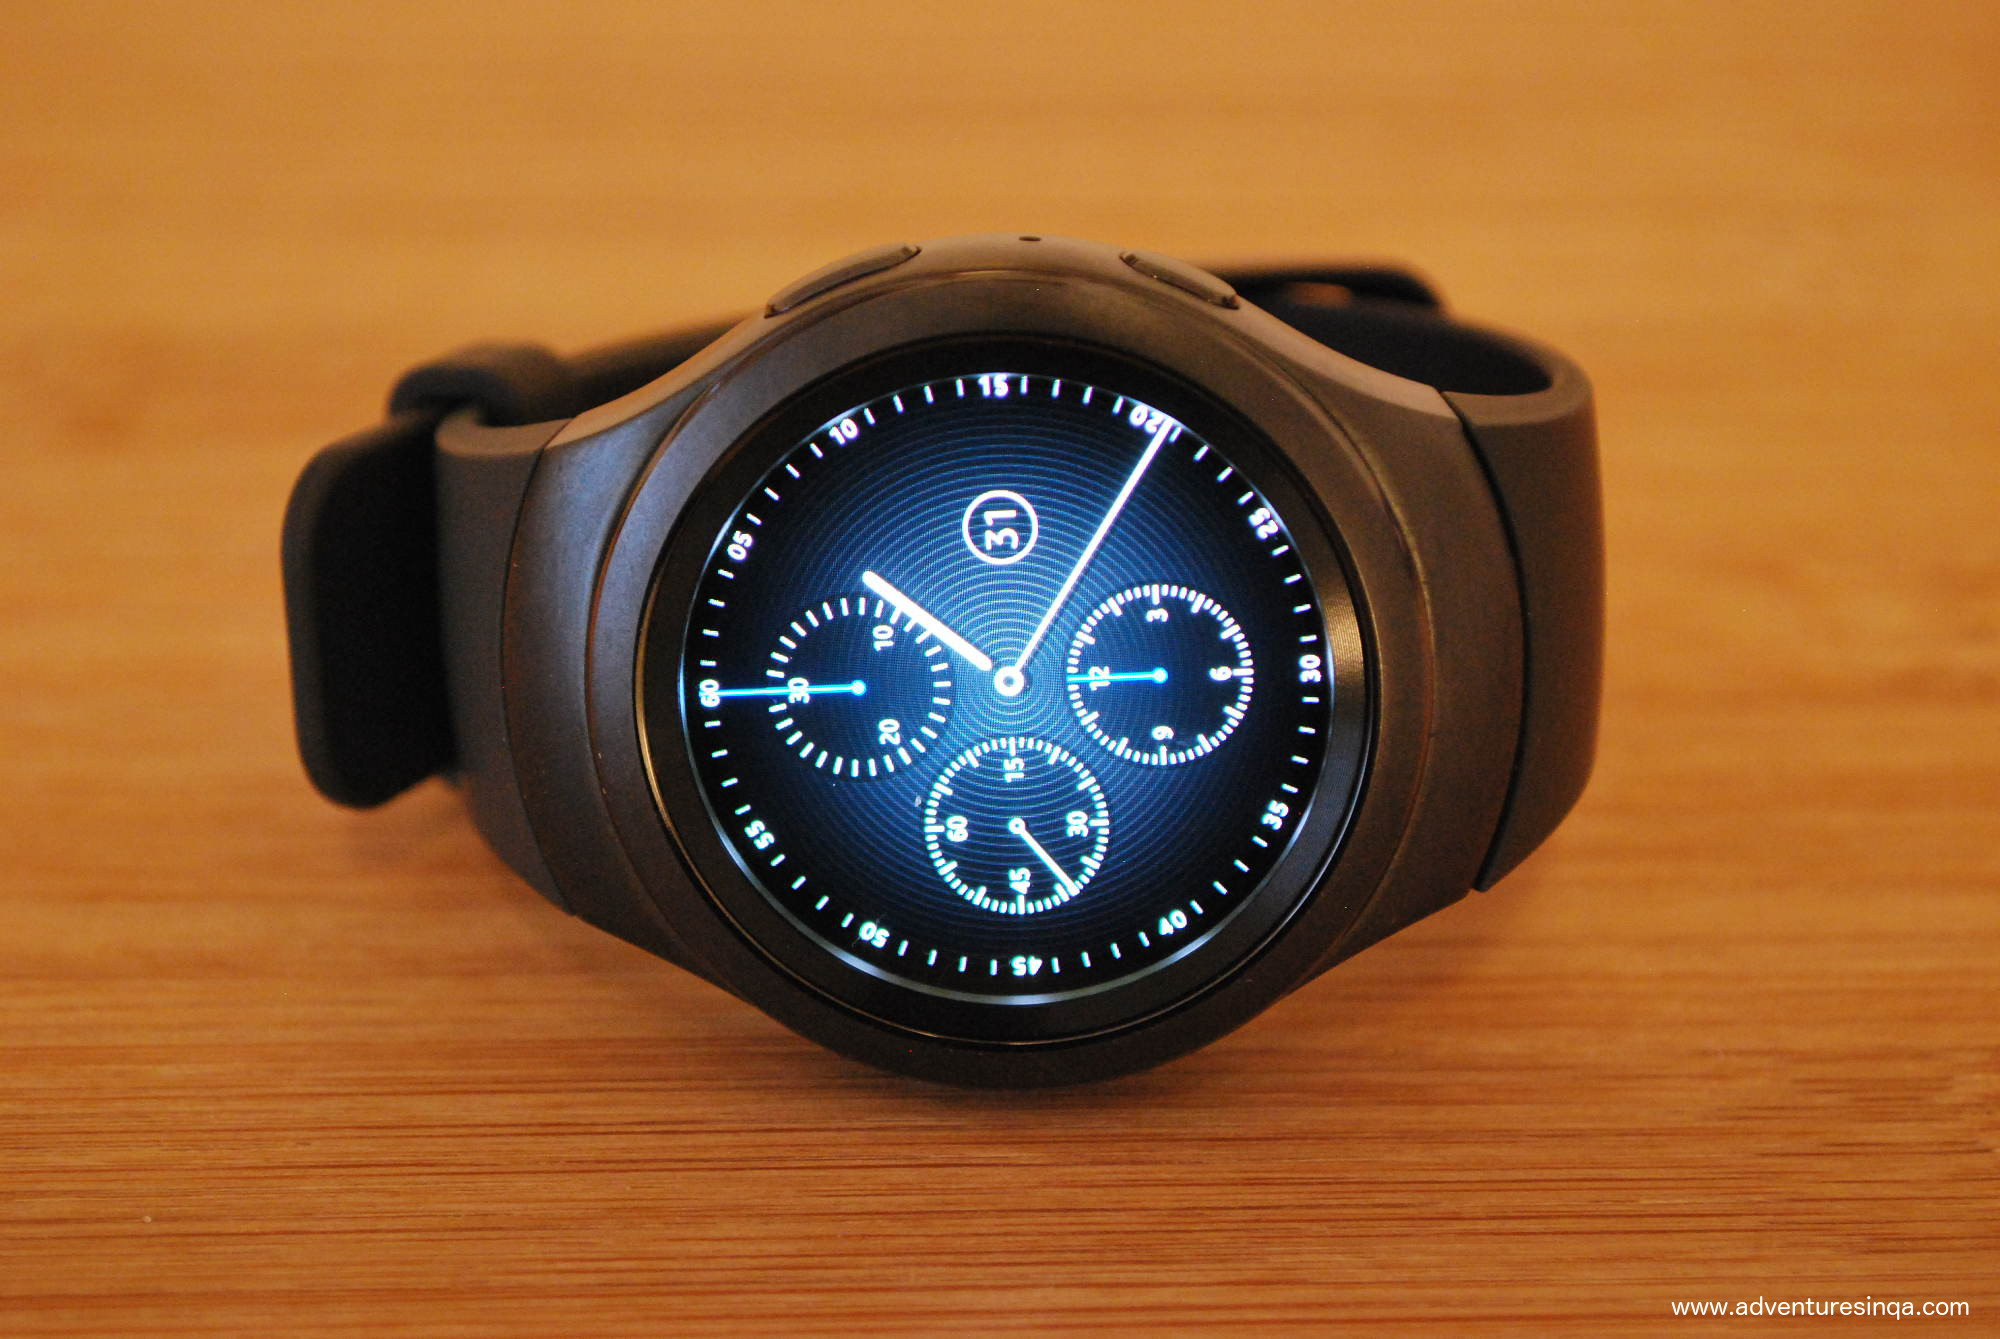 Smartwatch App Testing - Tizen OS | Adventures in QA